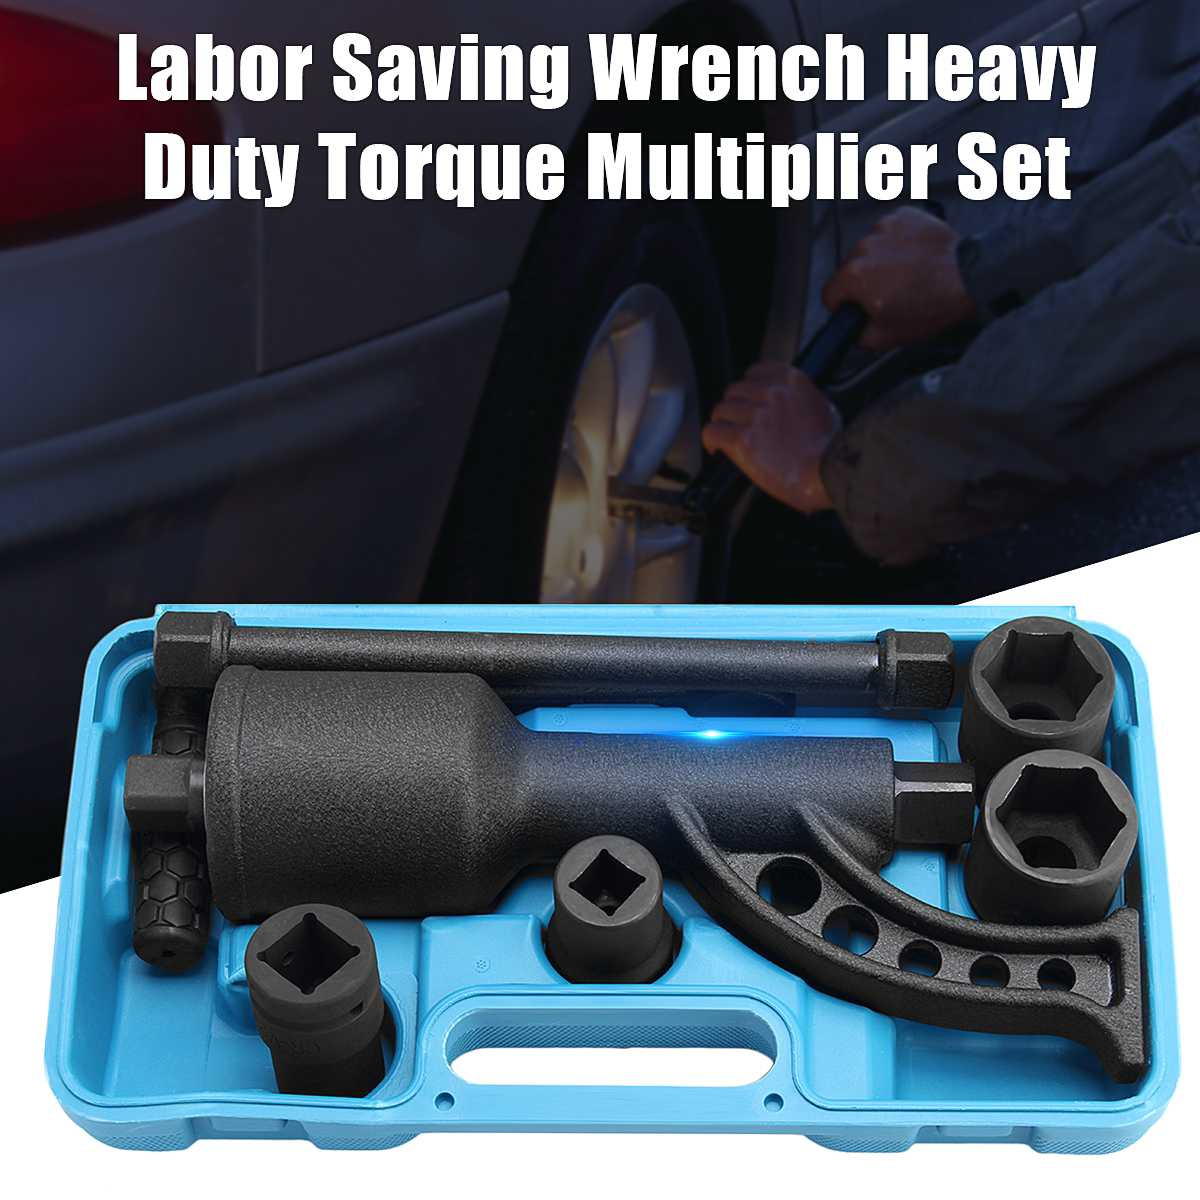 Torque Multiplier Wrench Lug Nut Lugnuts Remover Labor Saving Socket Car Wash Maintenance Engine Care